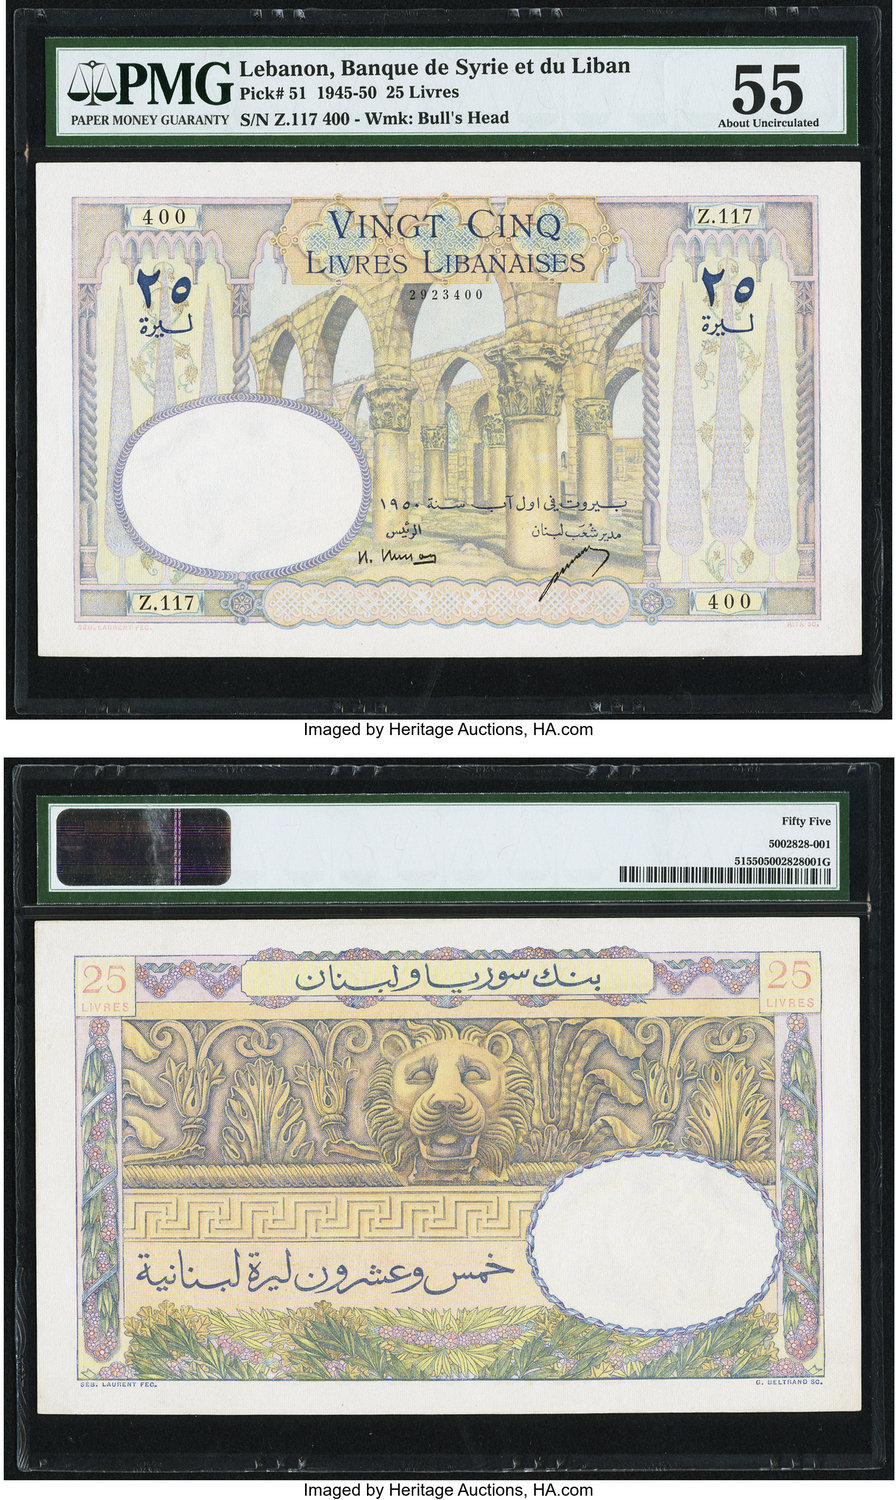 World Currency Lebanon Banque De Syrie Et Du Liban 25 Livres Nd 1945 1950 Pick 51 A Bulls Head Is The Watermark On